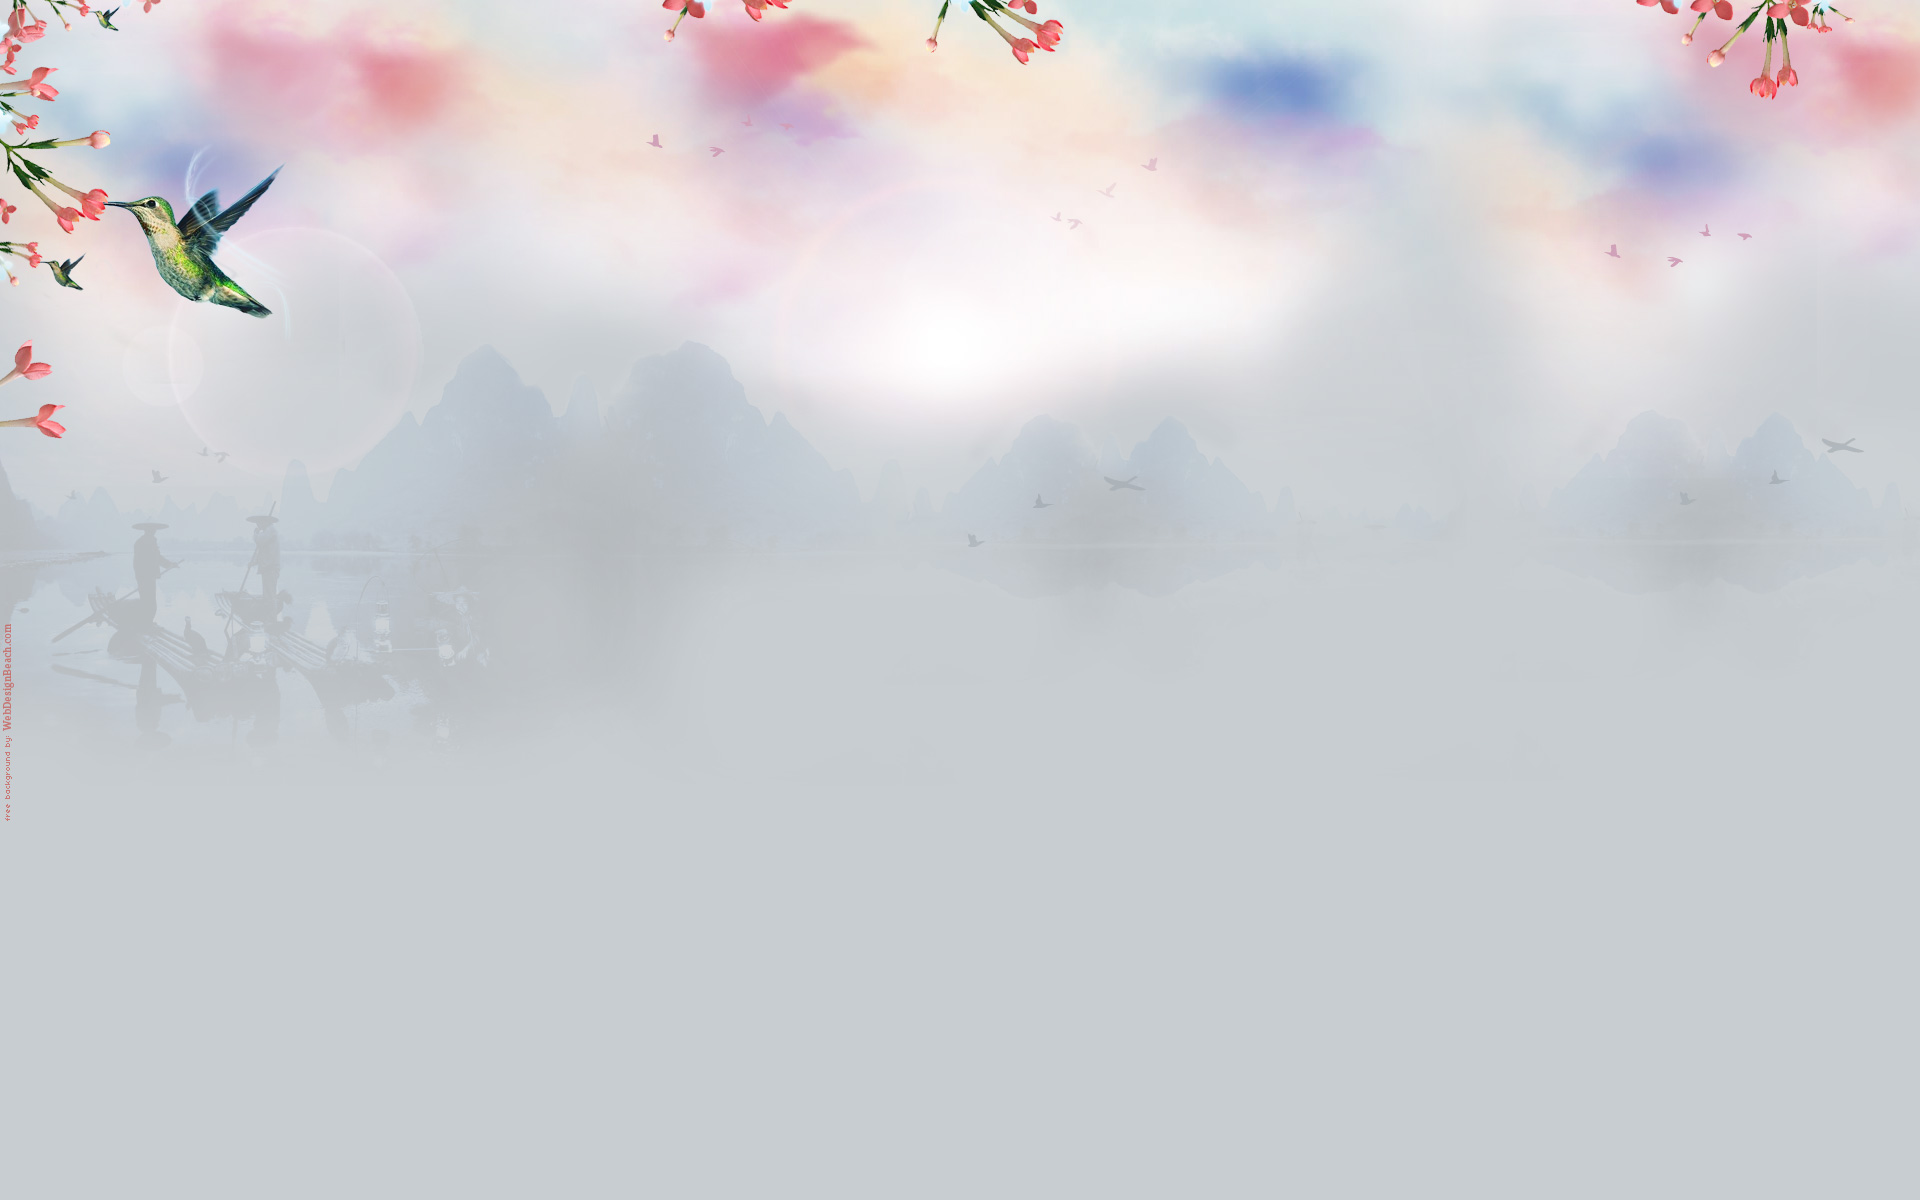 Zen Birds Twitter background